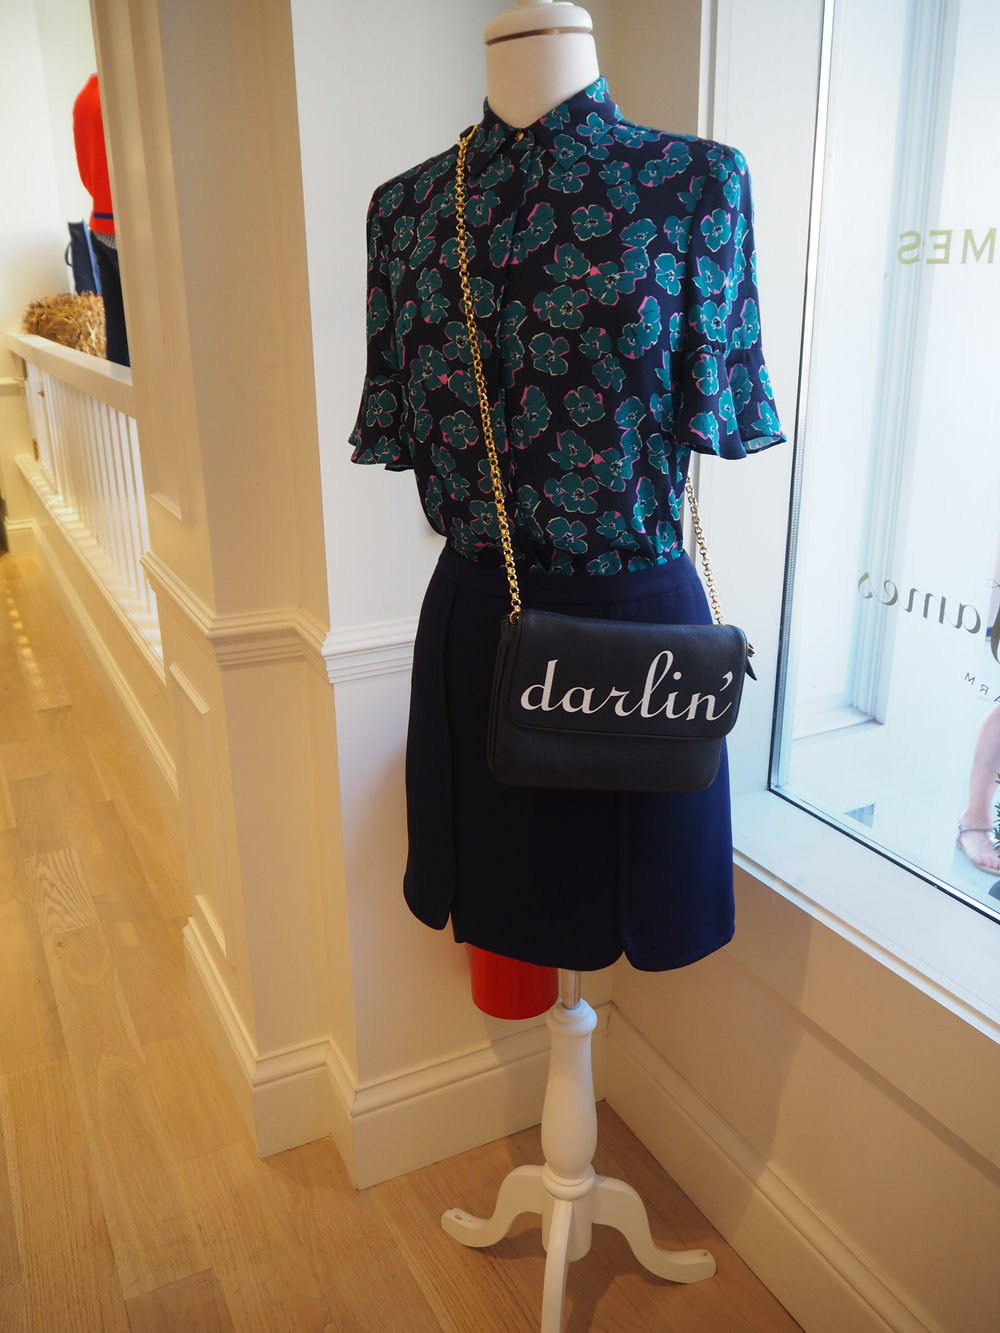 Darlin' clutch bag at Draper James. Lifestyle brand by Reese Witherspoon, in Nashville Tennessee. Click here for more info.